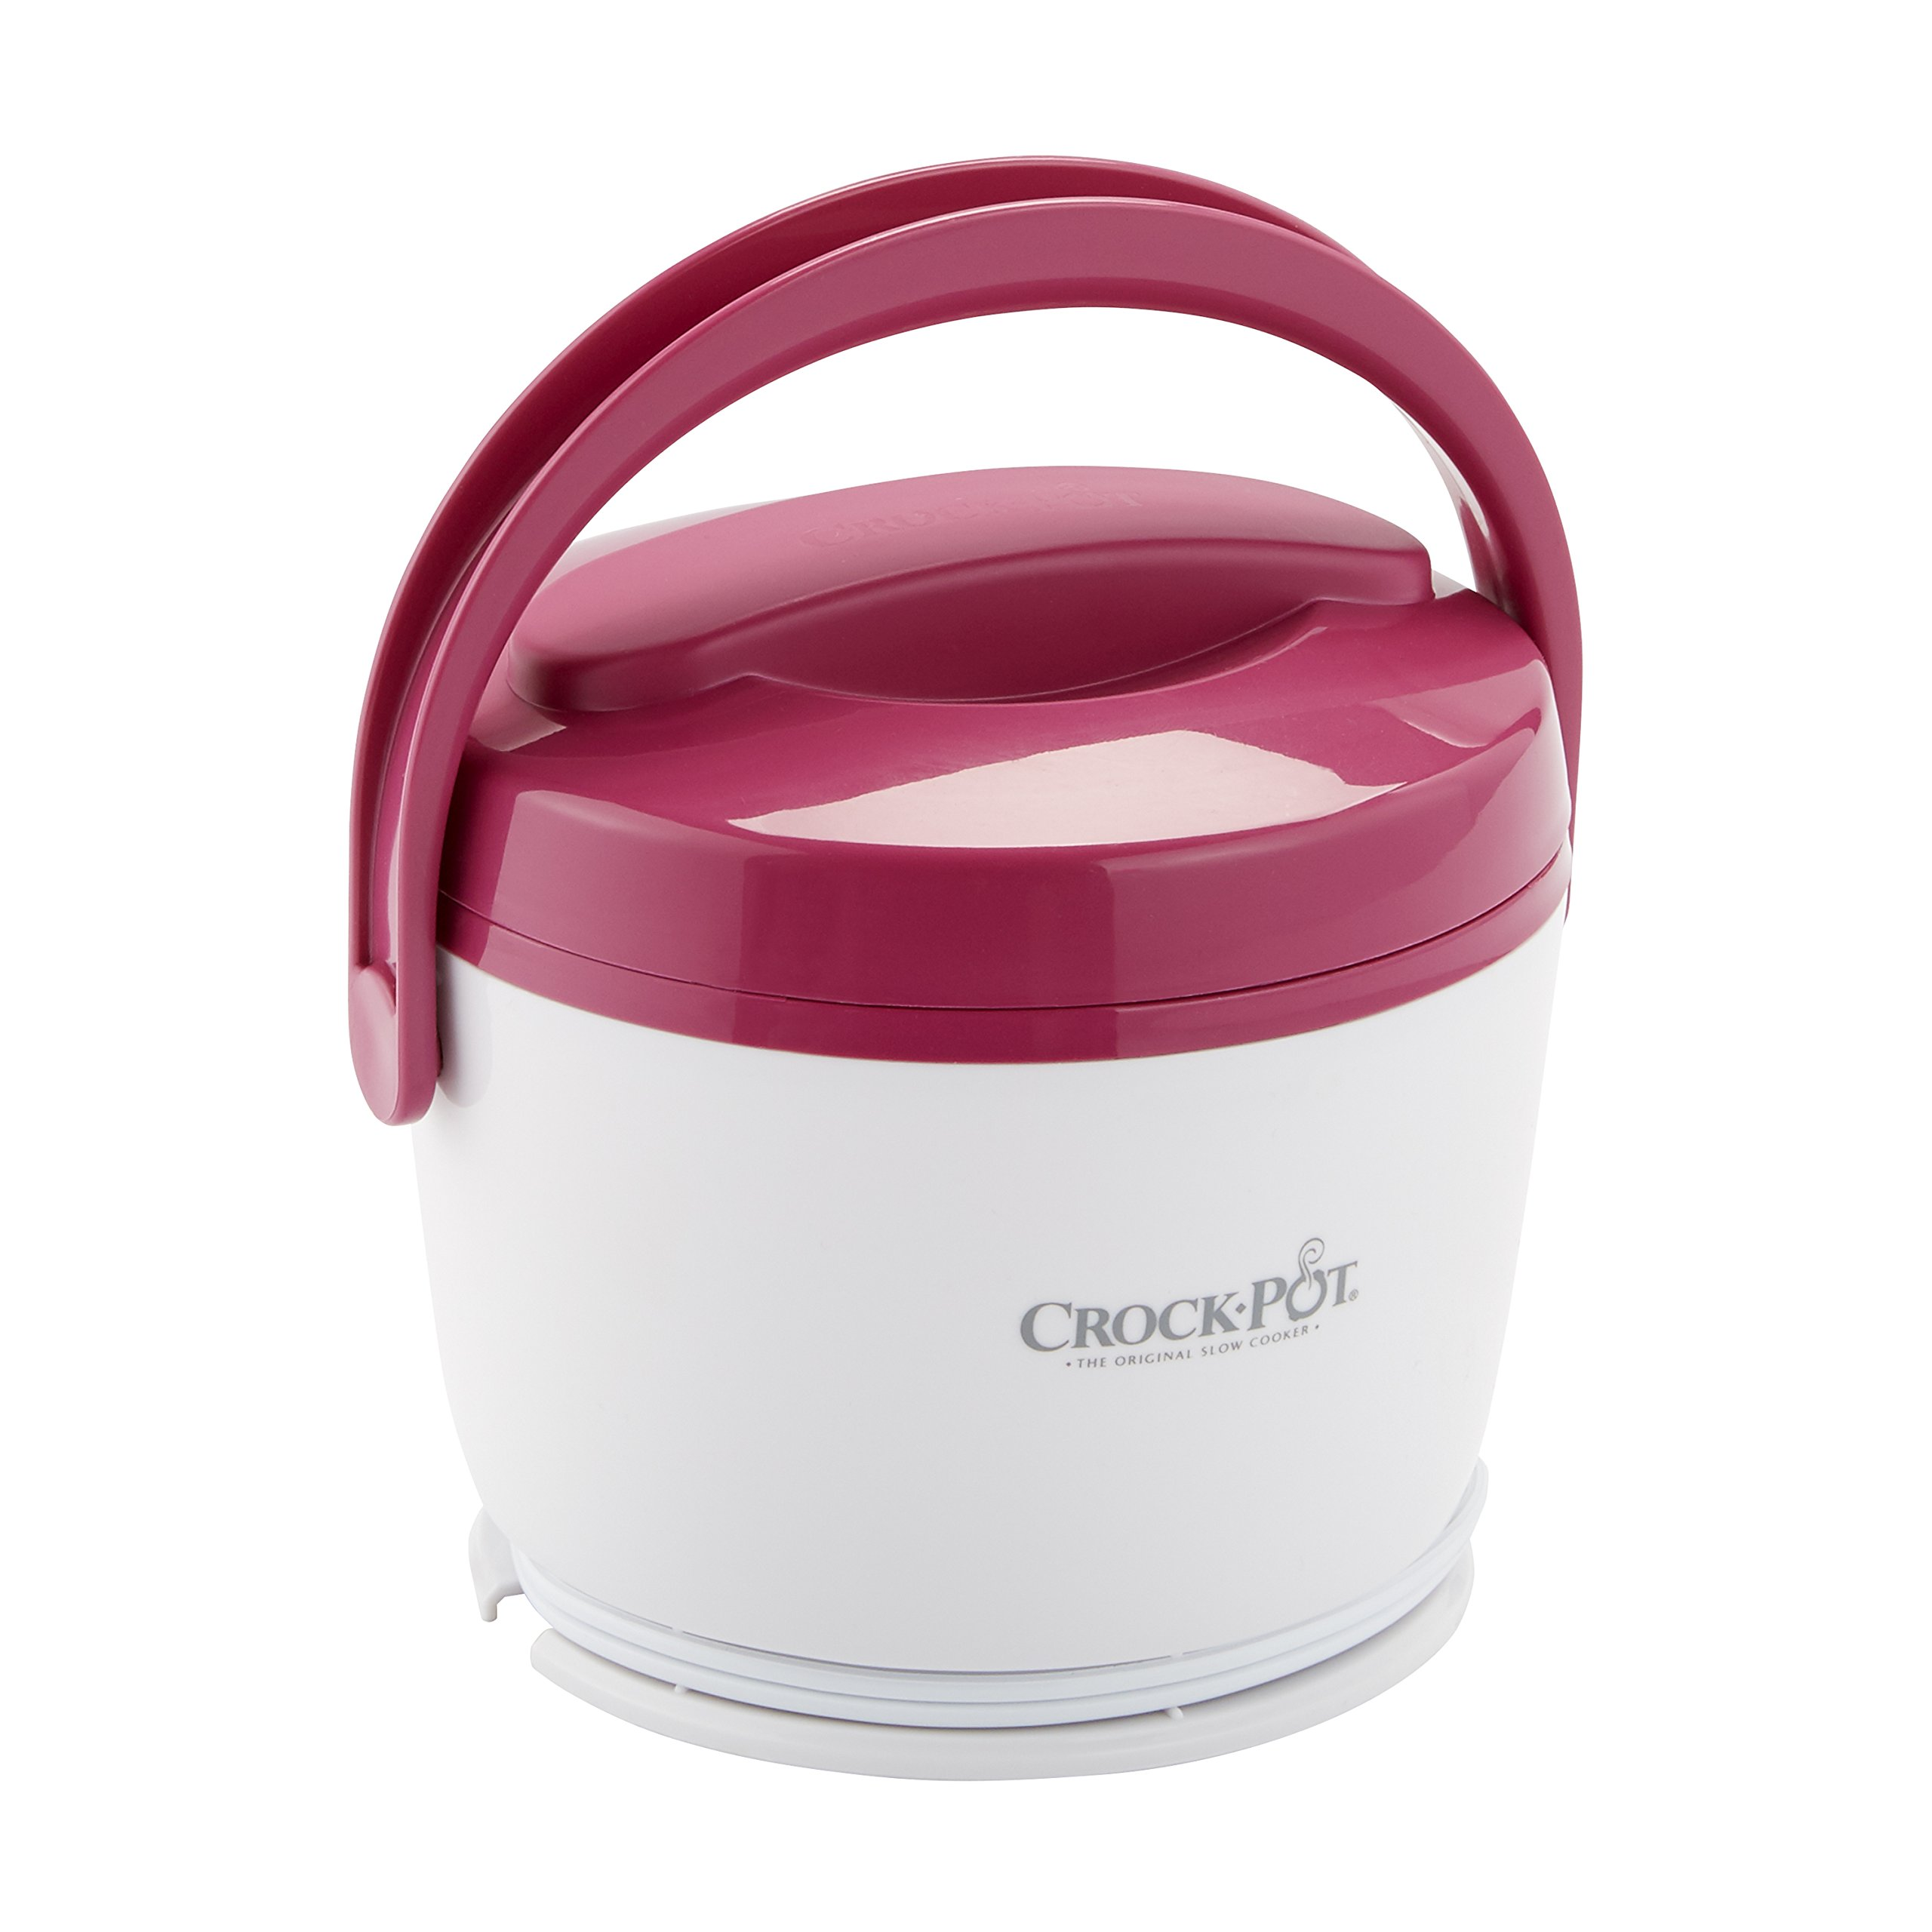 Crock-Pot SCCPLC200-PK 20-Ounce Lunch Crock Food Warmer, Pink